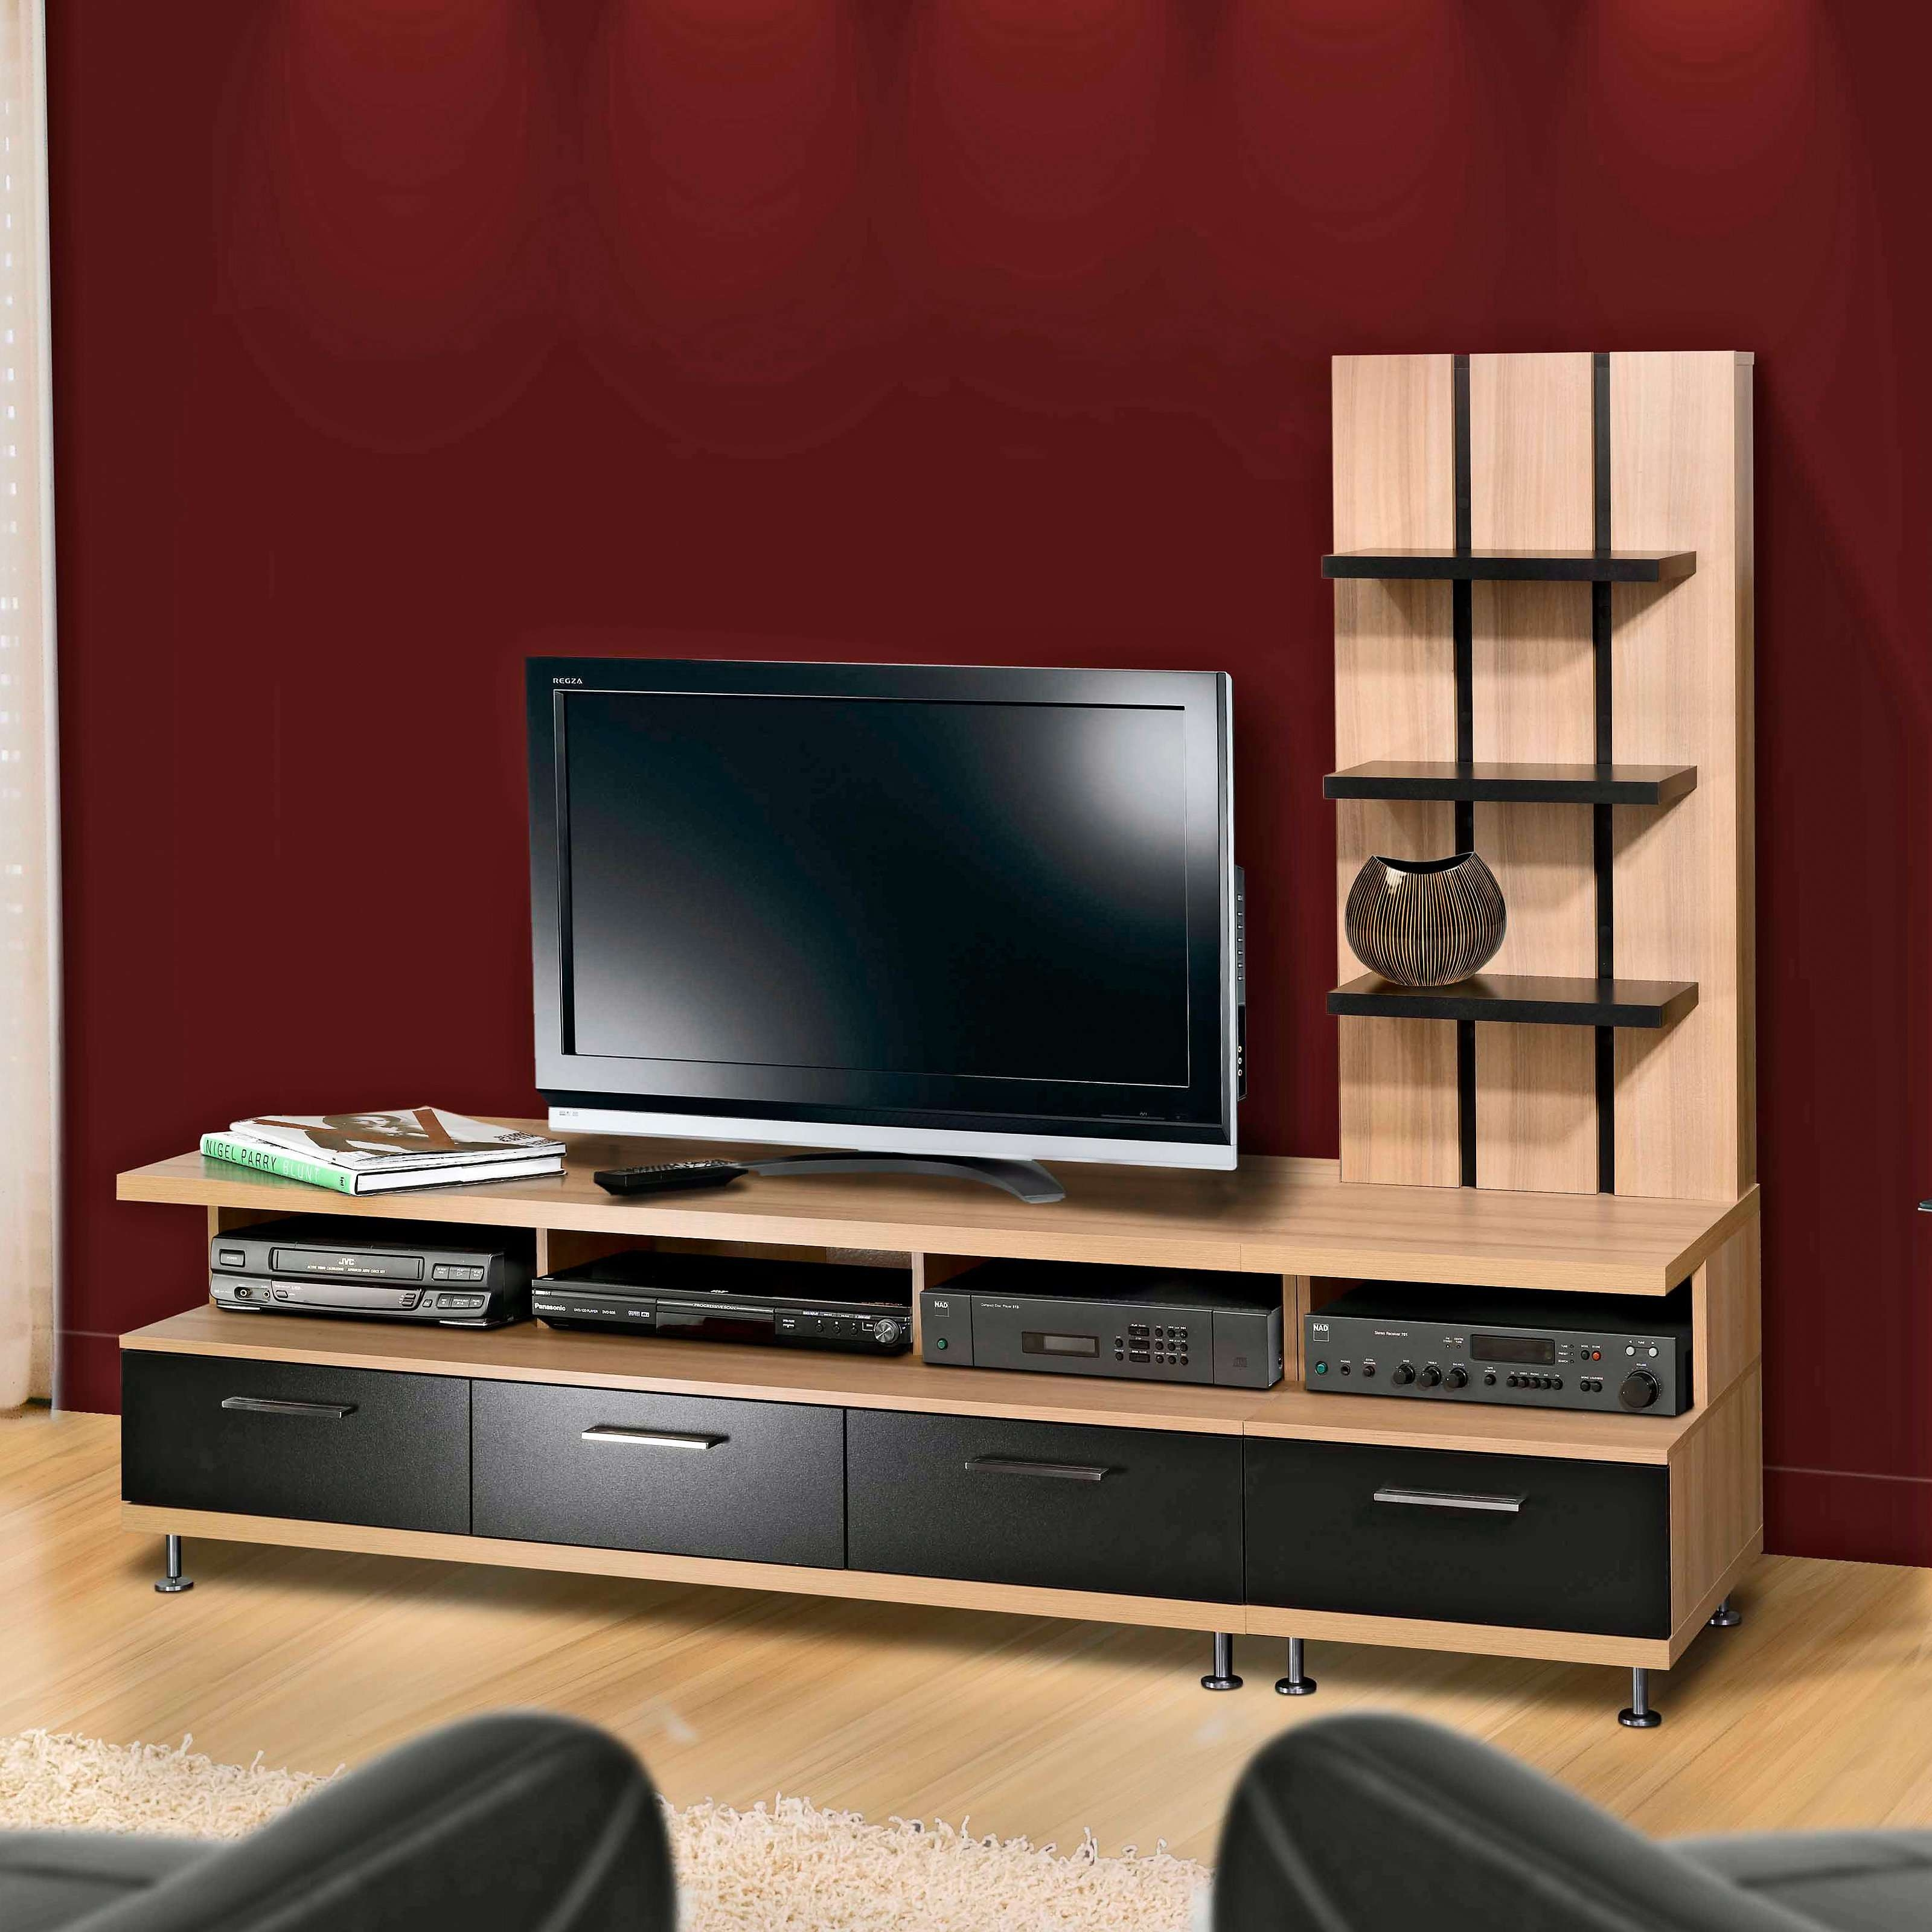 Media Stands For Flat Screen Tvs Tv Wall Units Screens Elegant And Inside Contemporary Tv Stands For Flat Screens (View 11 of 20)